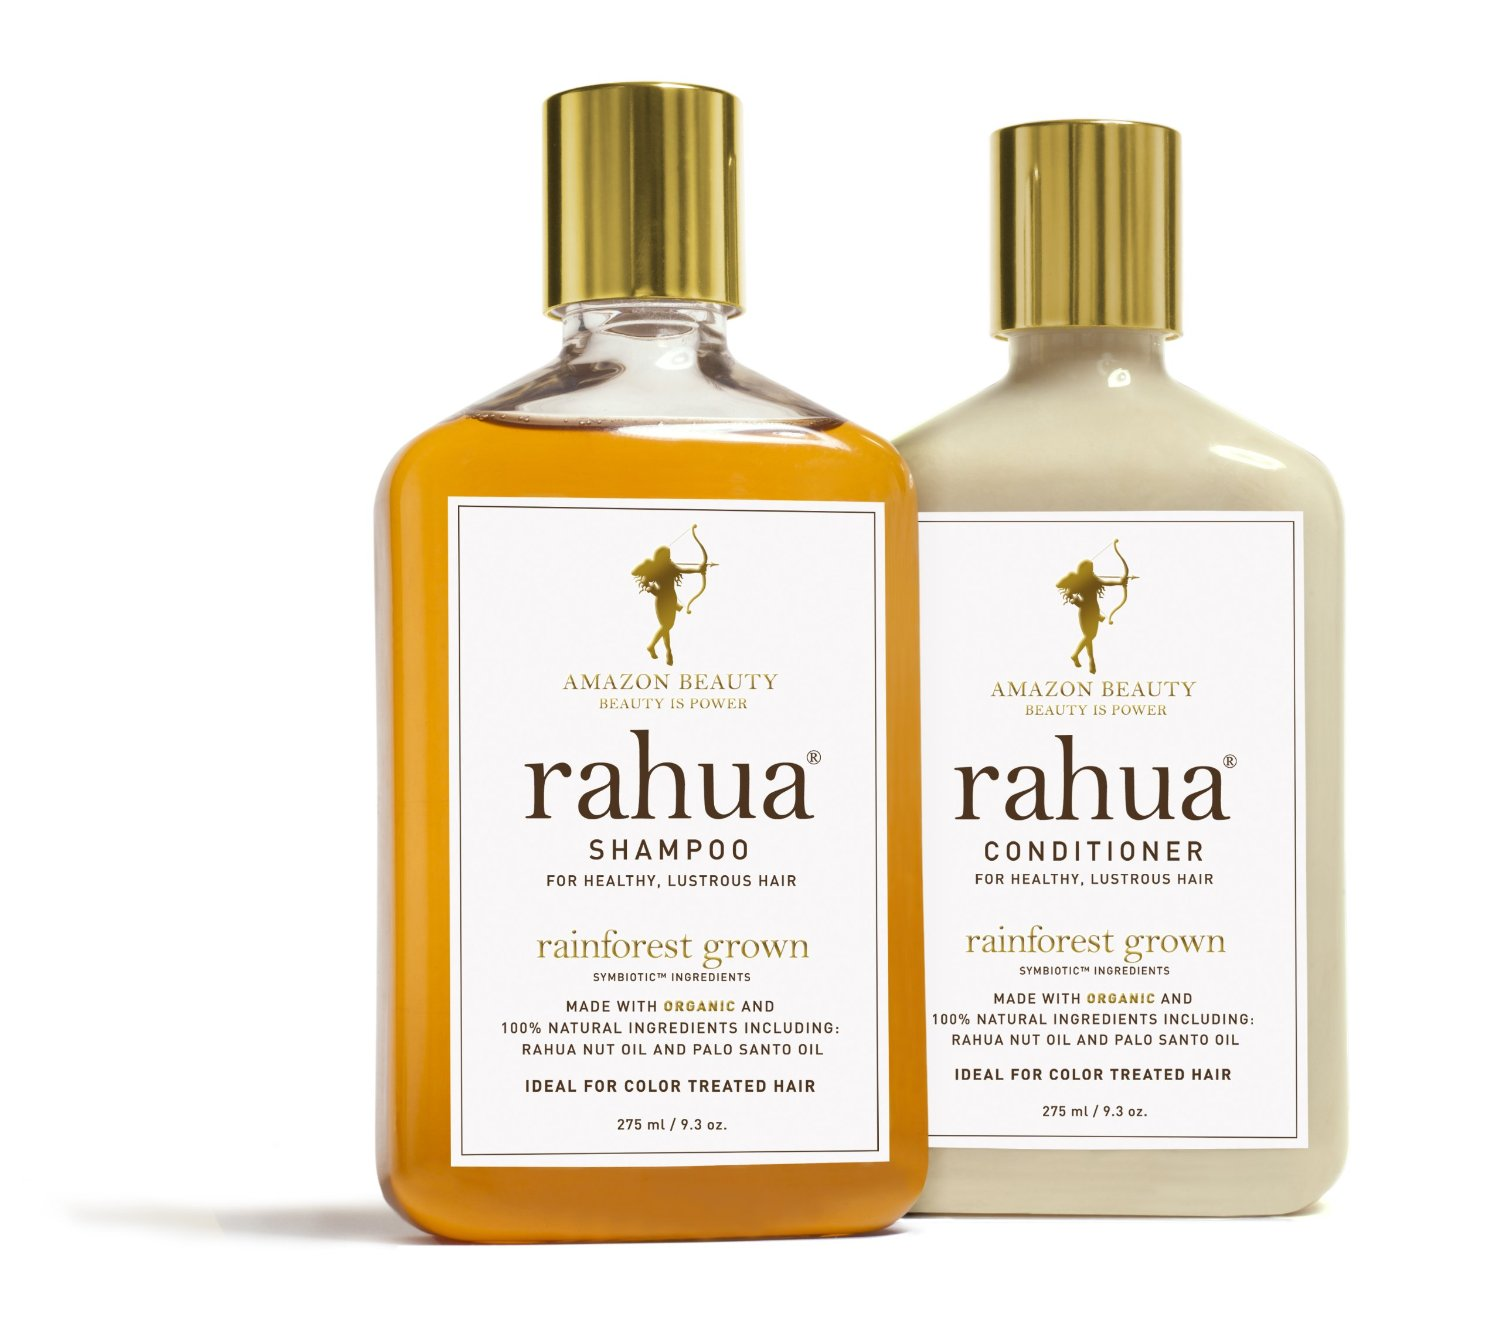 Rahua Shampoo & Conditioner - The Organic Choice